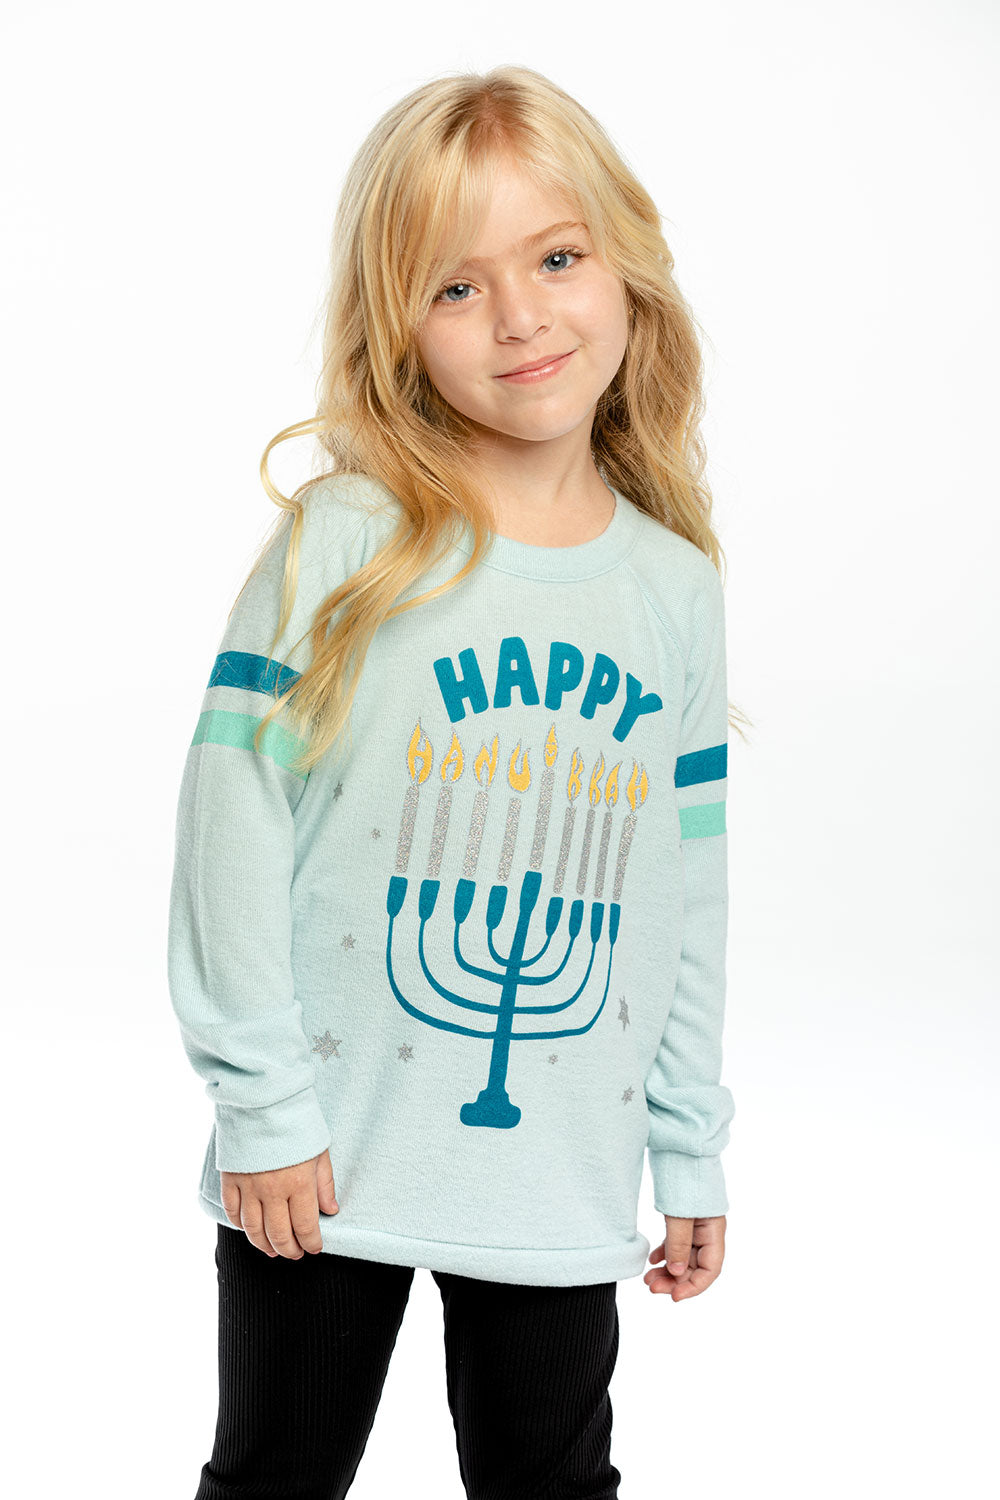 Happy Hanukkah GIRLS chaserbrand4.myshopify.com